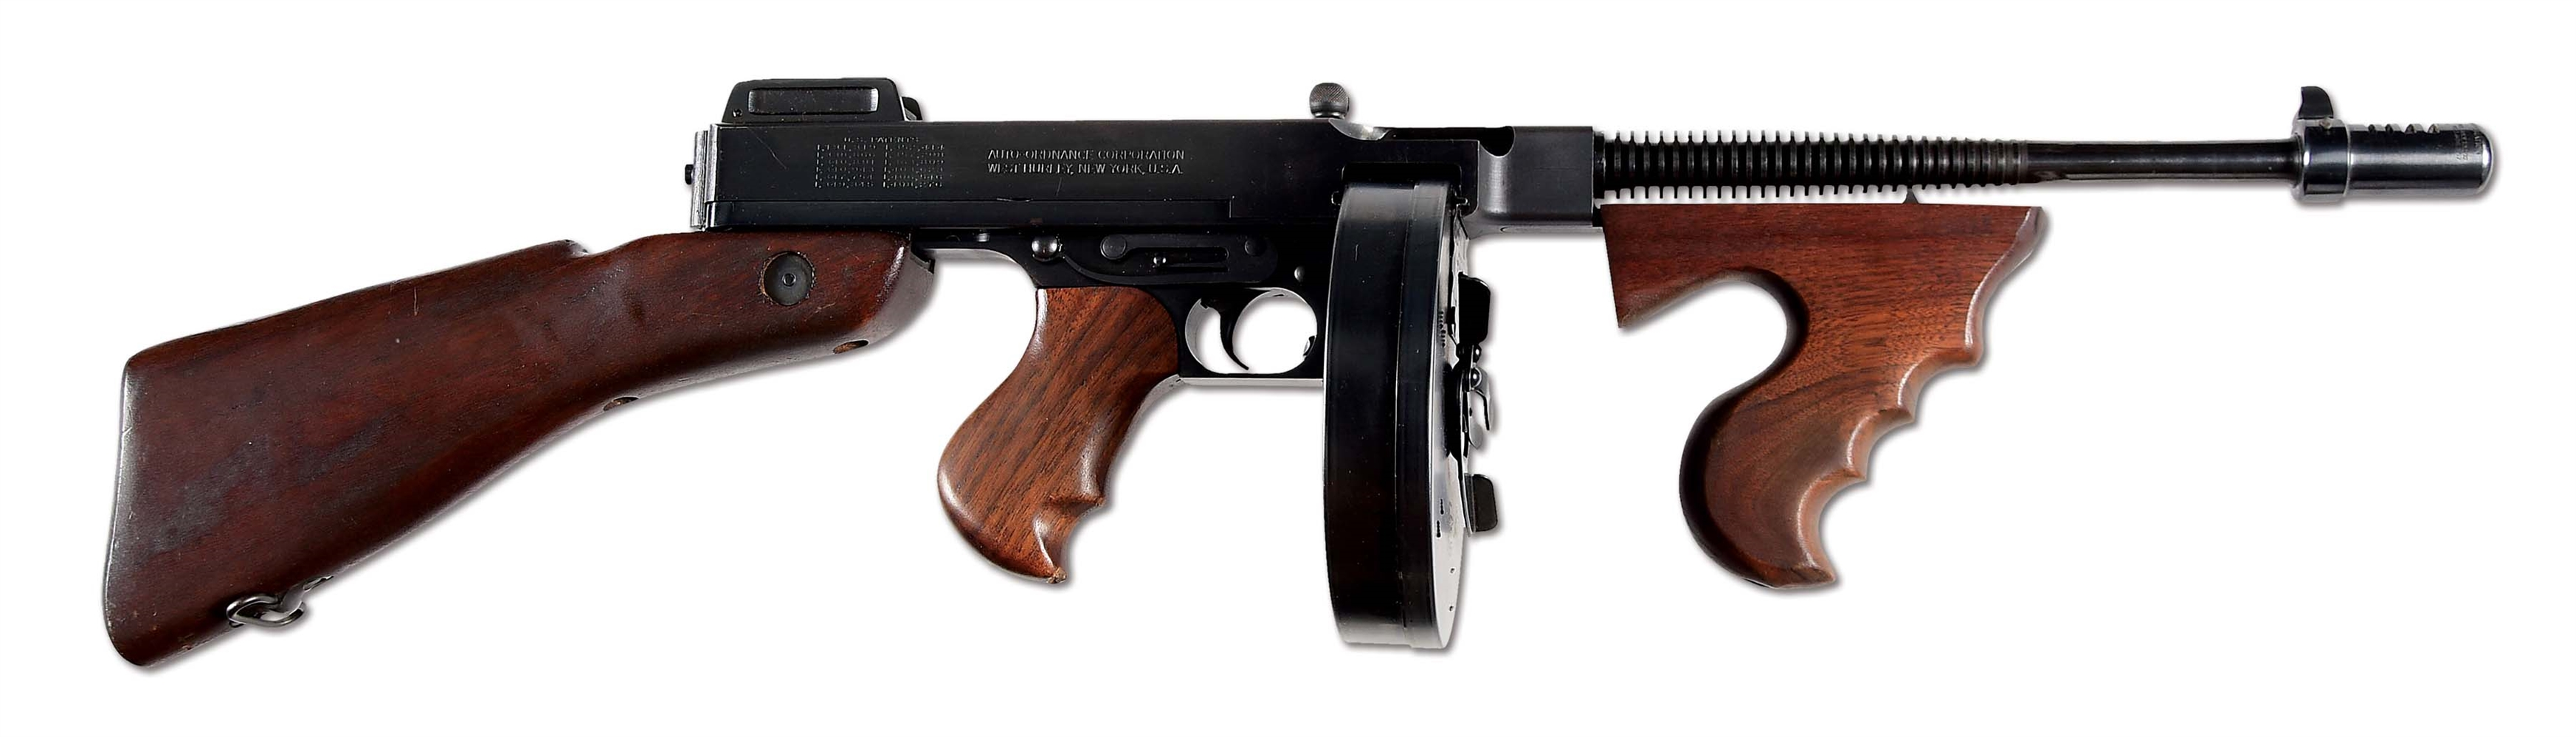 (N) ATTRACTIVE AND WELL ACCESSORIZED AUTO ORDNANCE WEST HURLEY THOMPSON MODEL 1928 MACHINE GUN (CURIO AND RELIC).